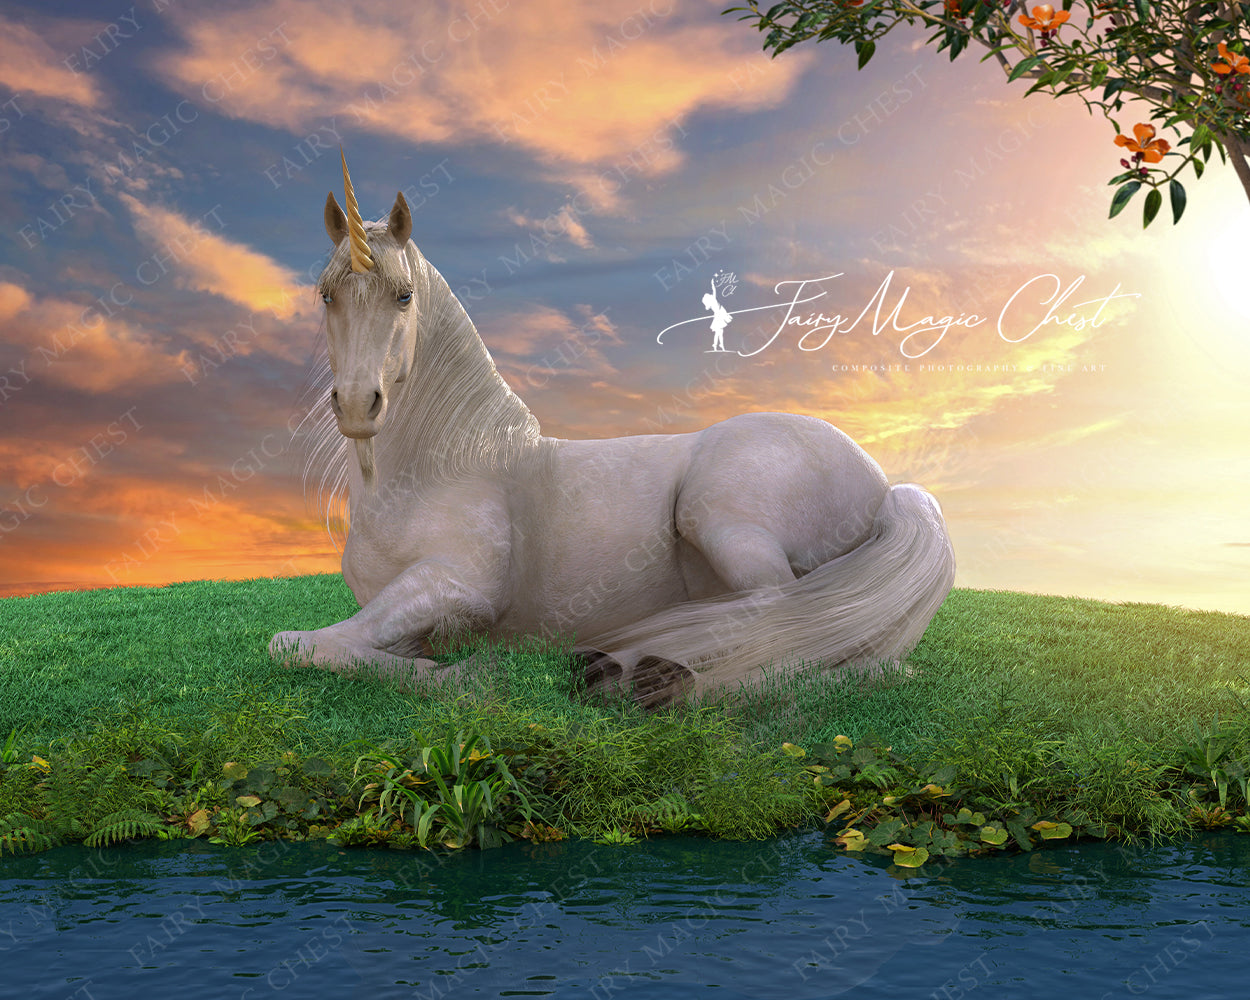 Unicorn by the river, digital background for Composite Photography. Digital Backdrop.